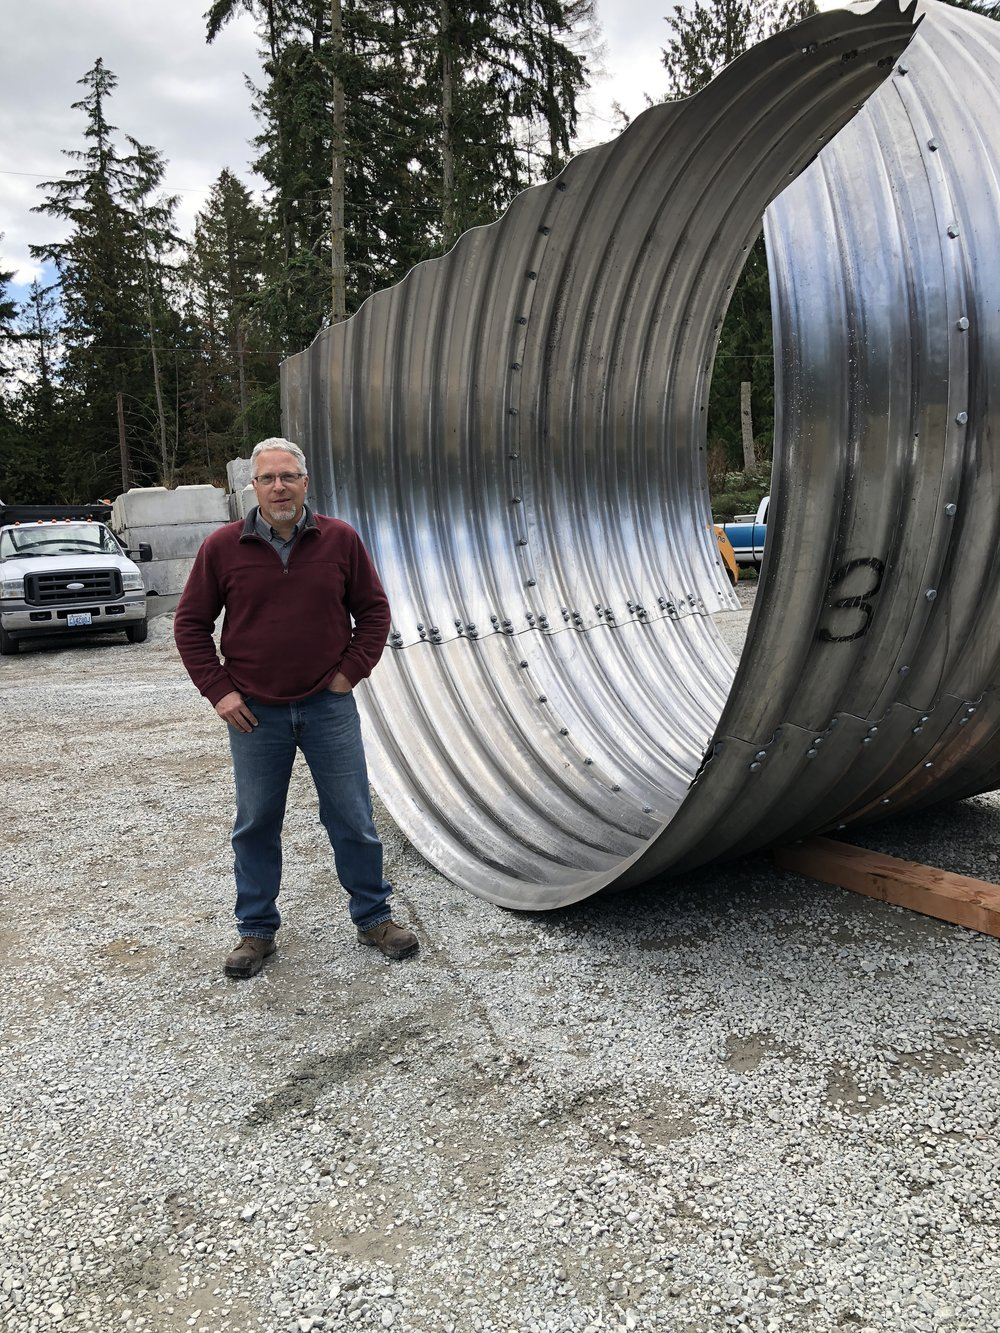 Remember the stacks of metal from the first update? Here they are at the beginning of assembly with SCD Engineer Ryan Bartelheimer present for scale.